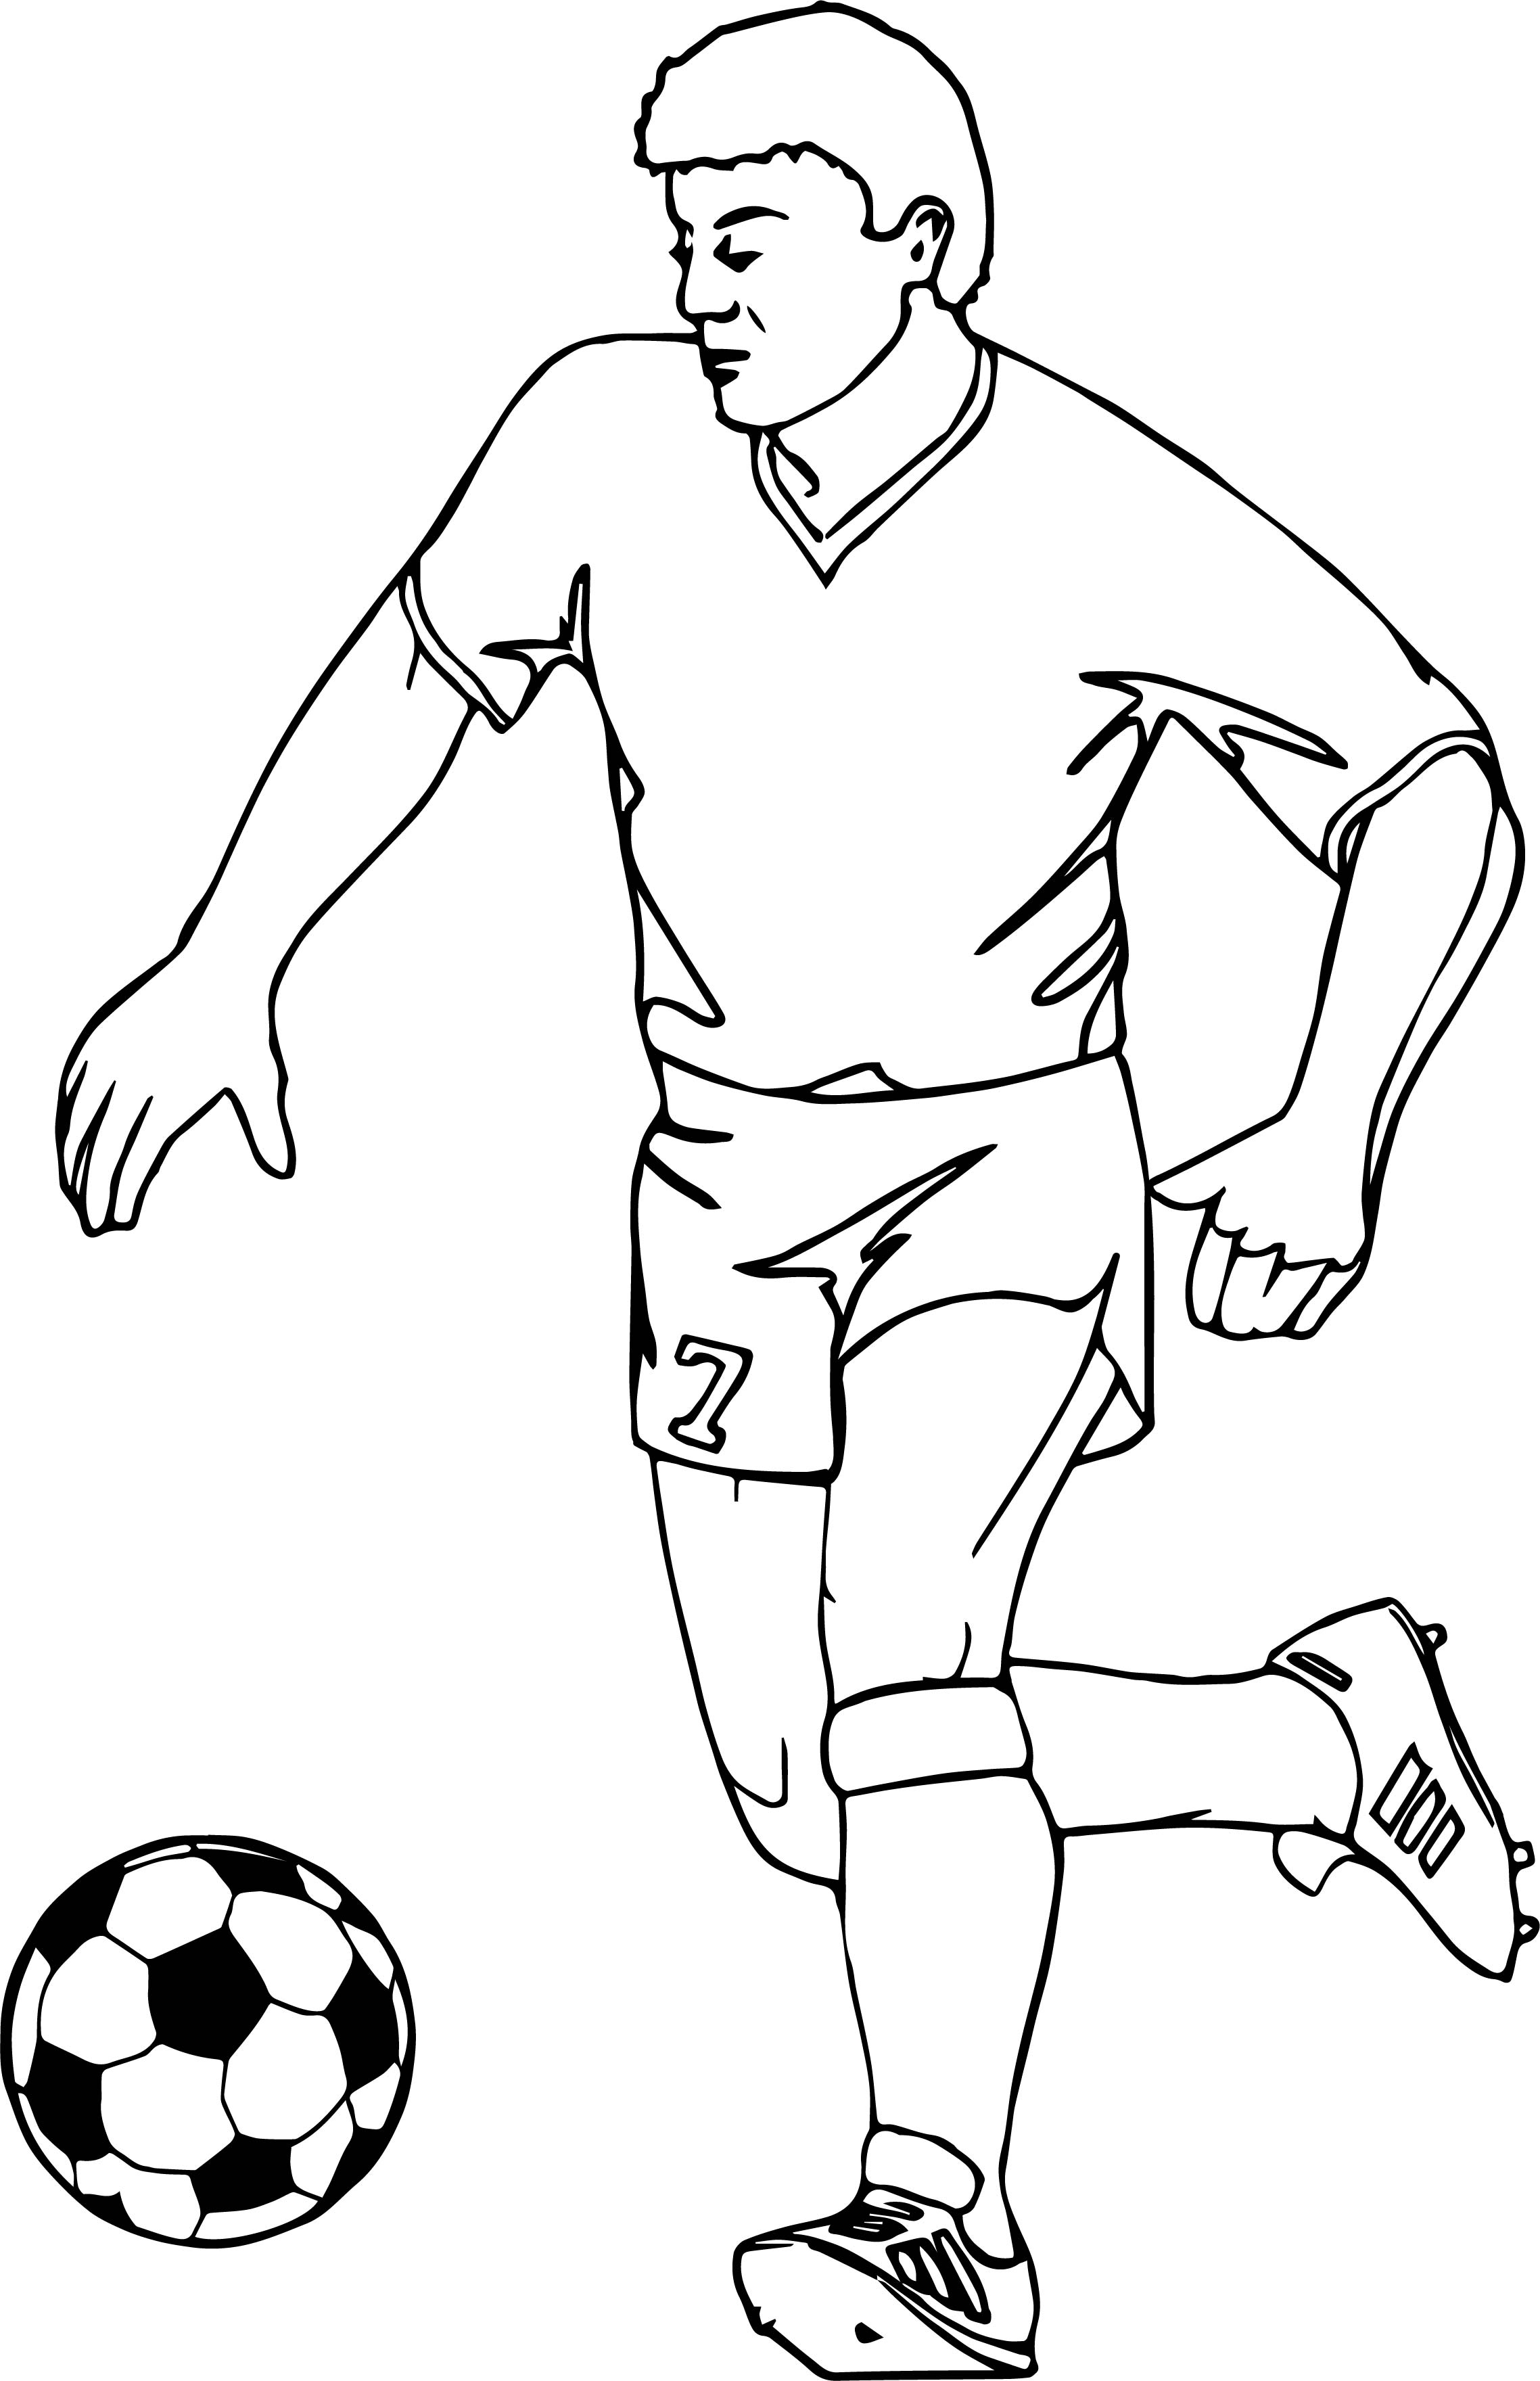 Running Football Player Playing Soccer Coloring Page | Wecoloringpage